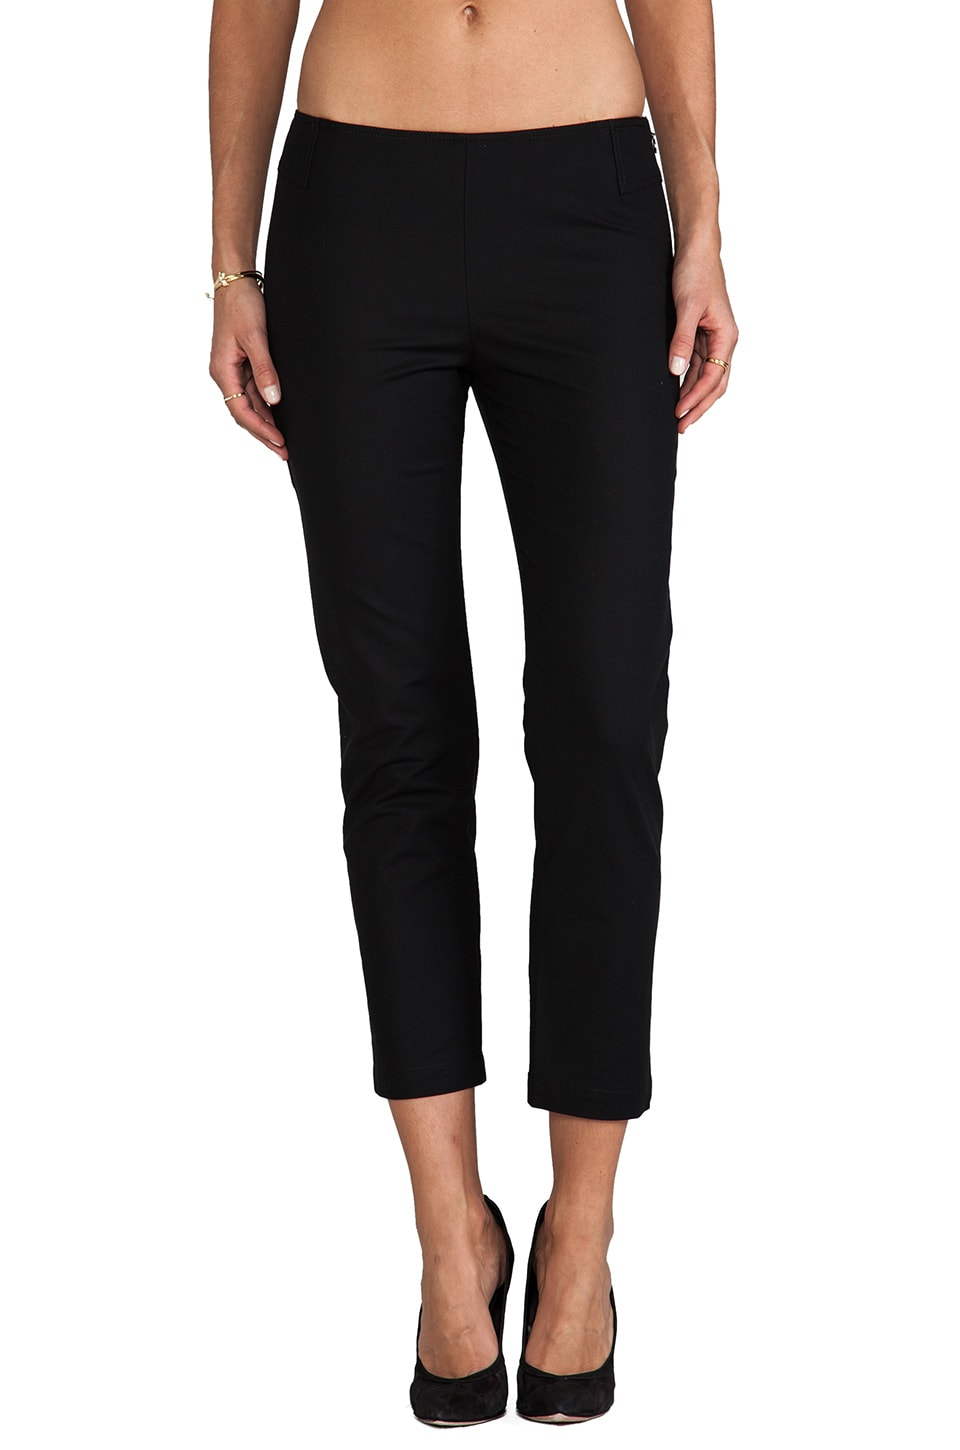 DEREK LAM 10 CROSBY Side Zip Skinny Pant in Black